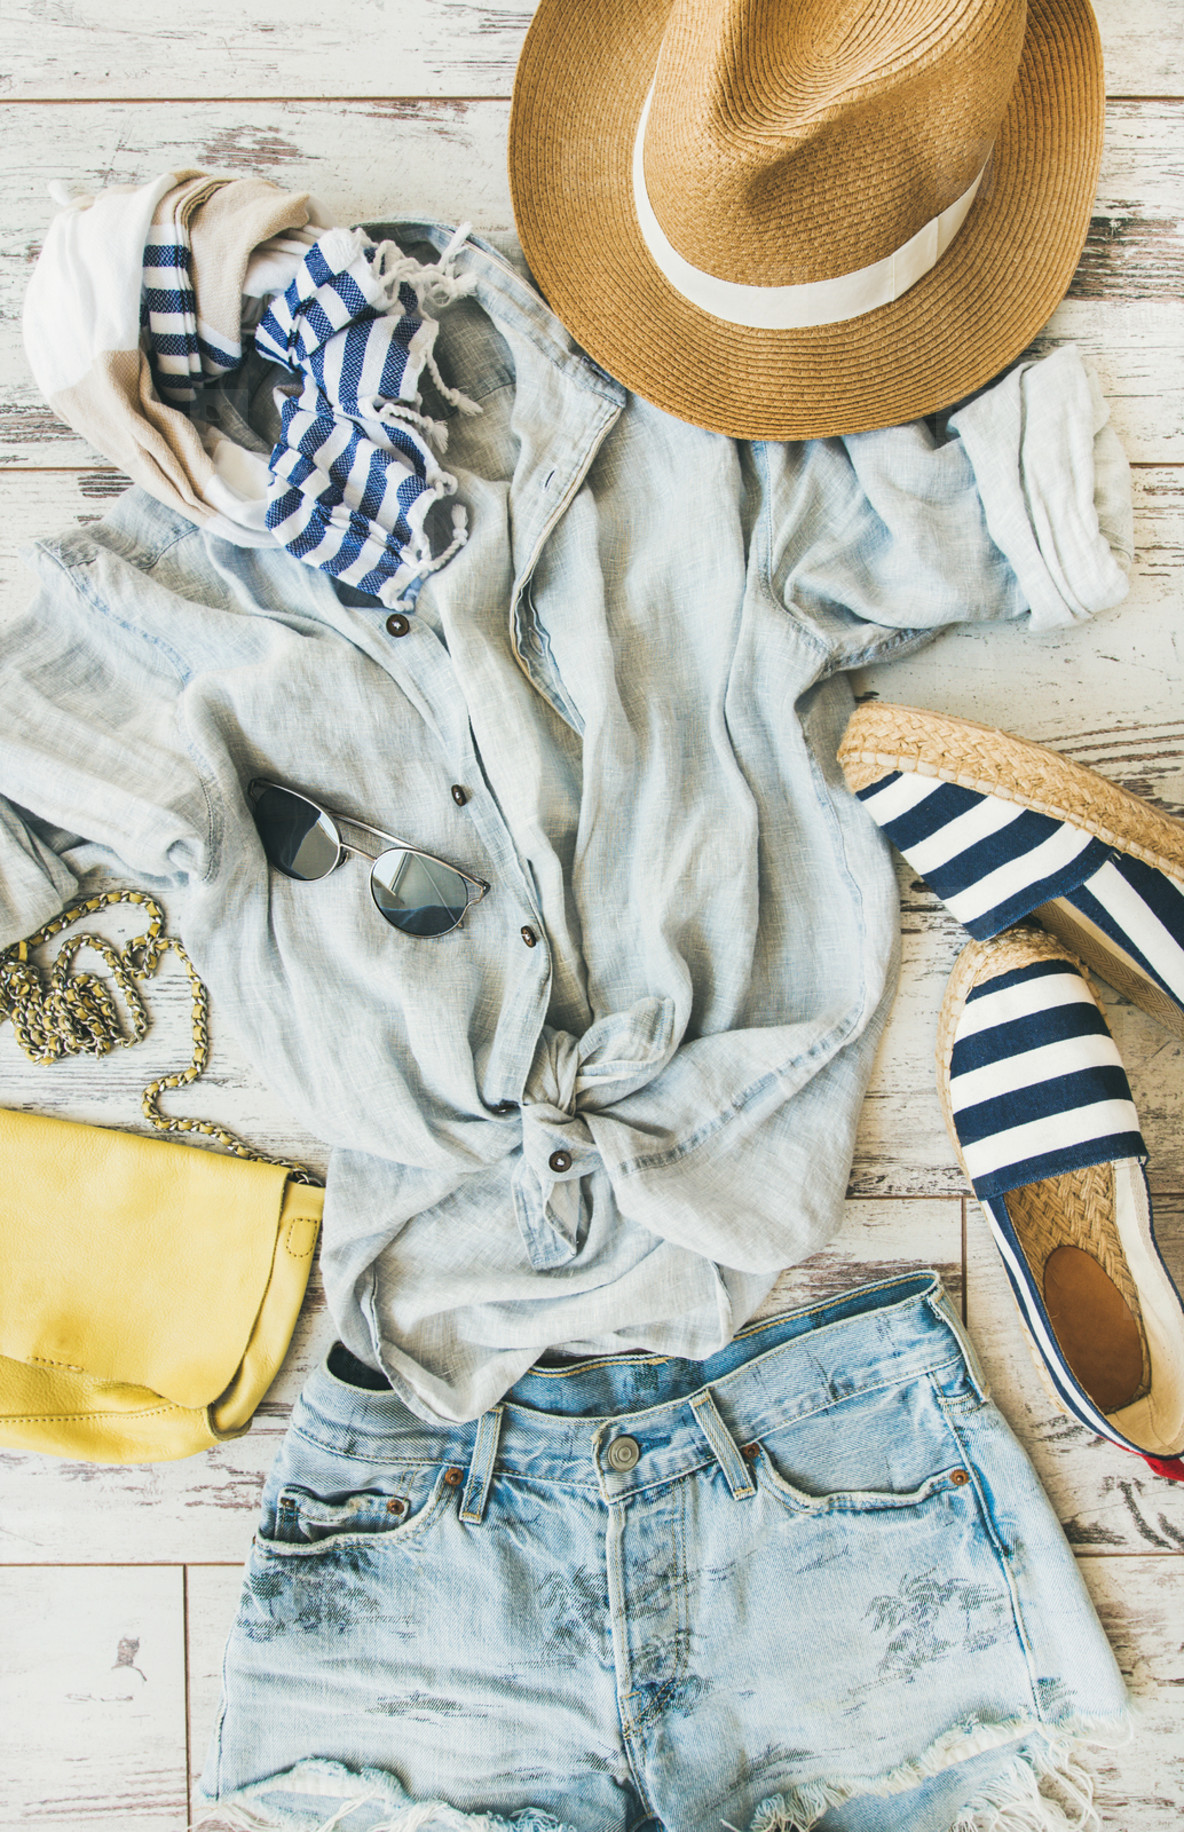 Summer womans outfit flatlay  top view  vertical composition